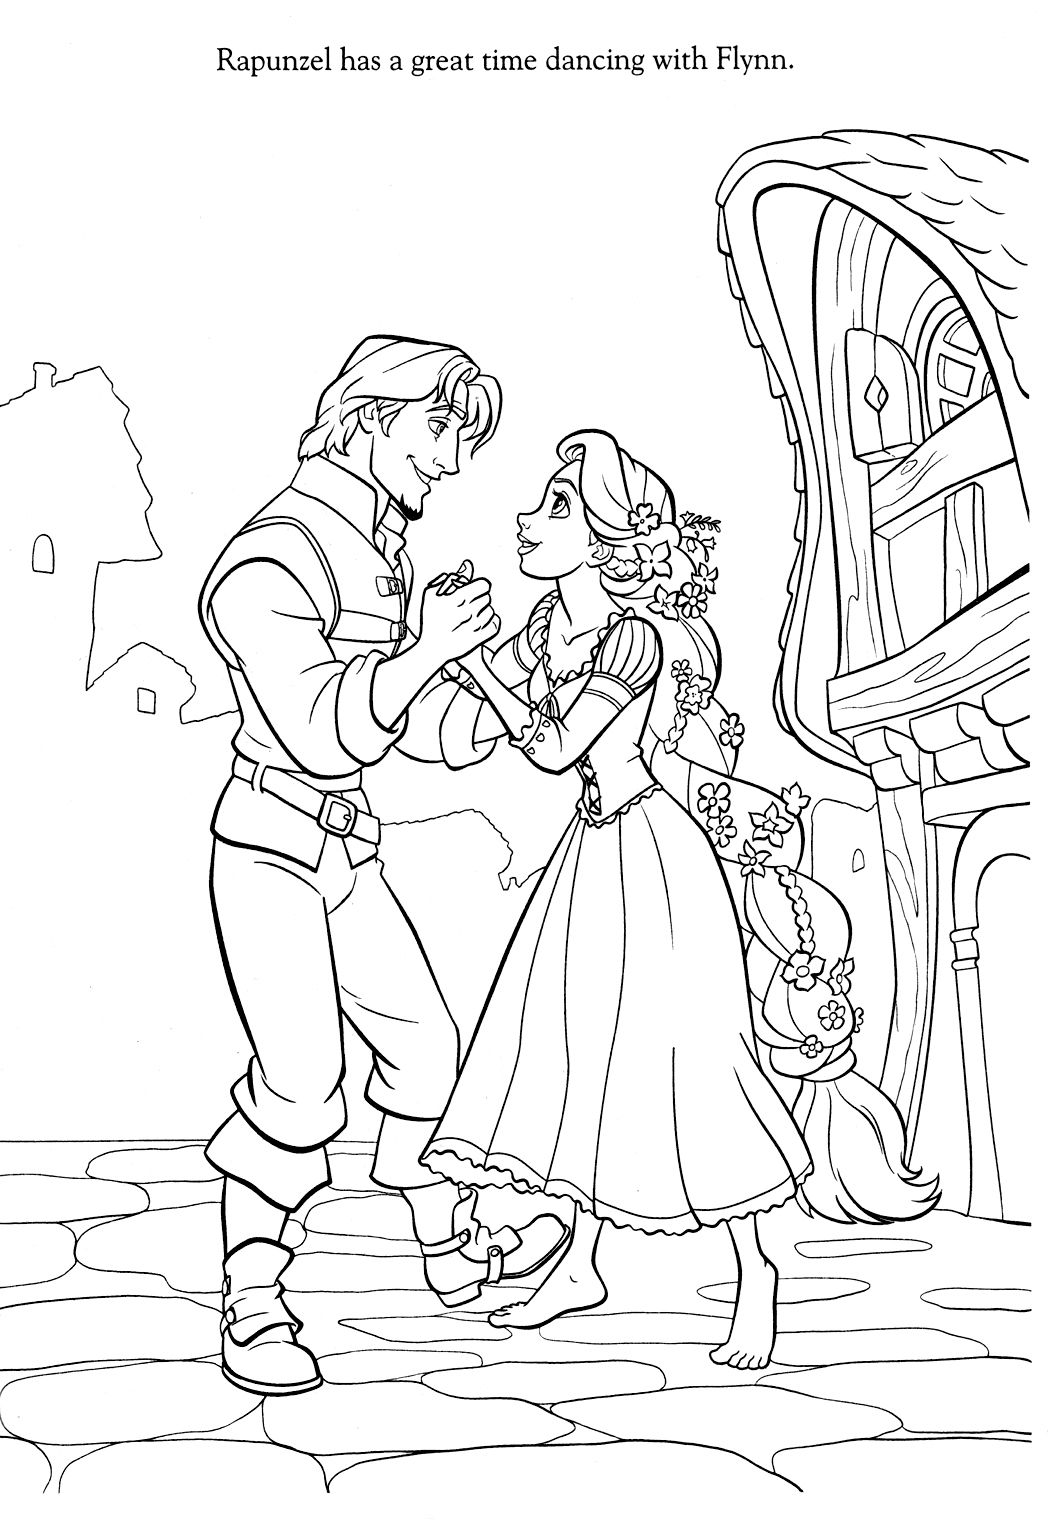 Tangled Rapunzel And Flynn Rider Coloring Page Tangled Coloring Pages Cool Coloring Pages Rapunzel Coloring Pages